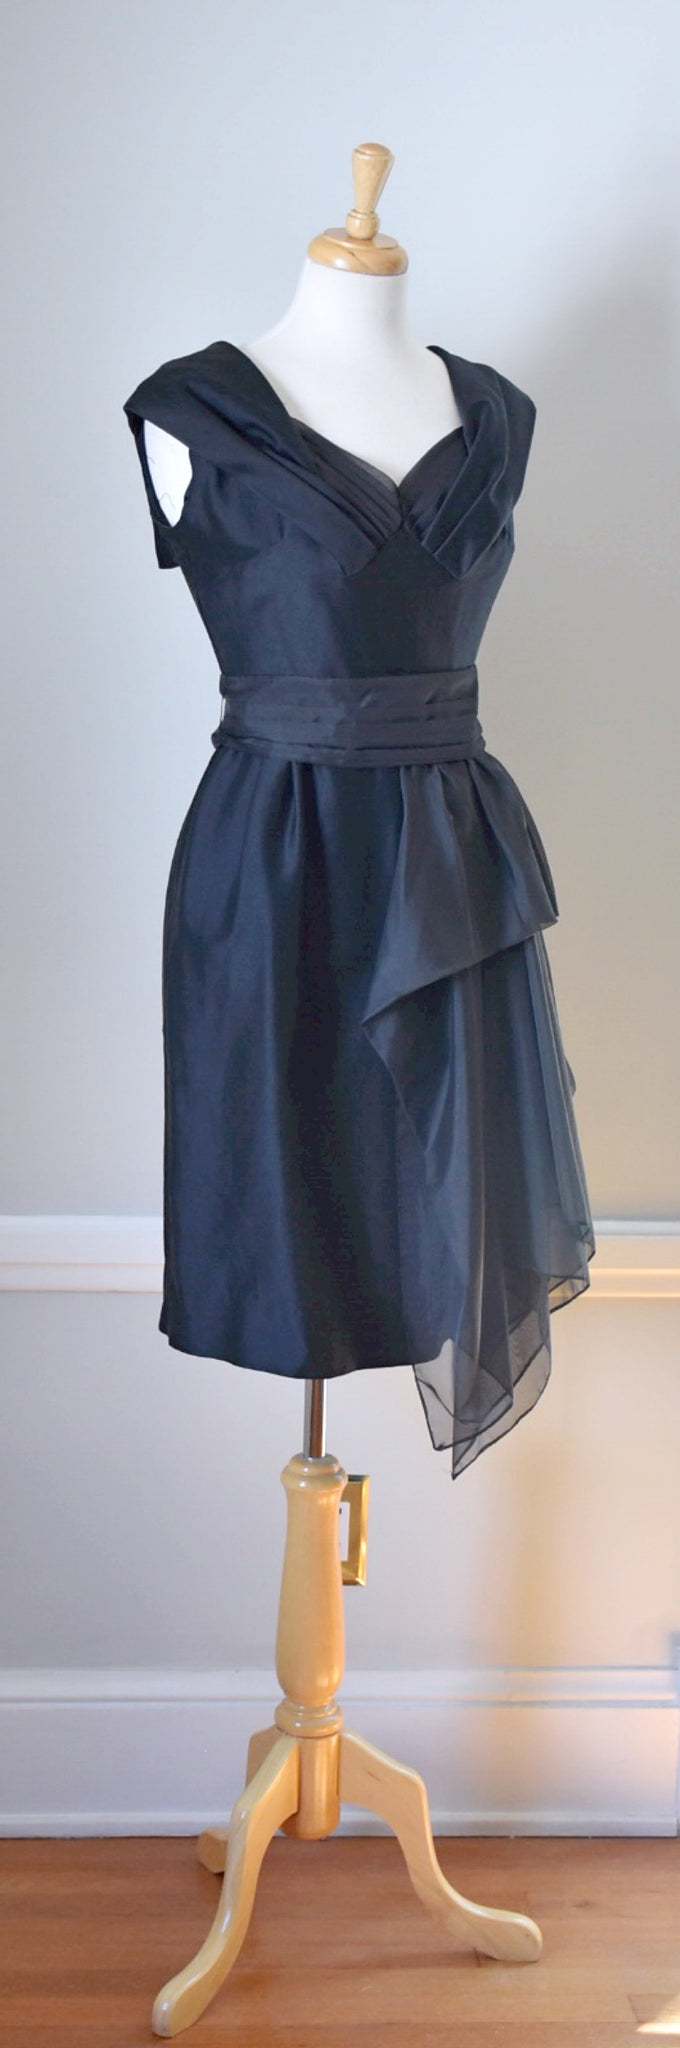 50s black party dress